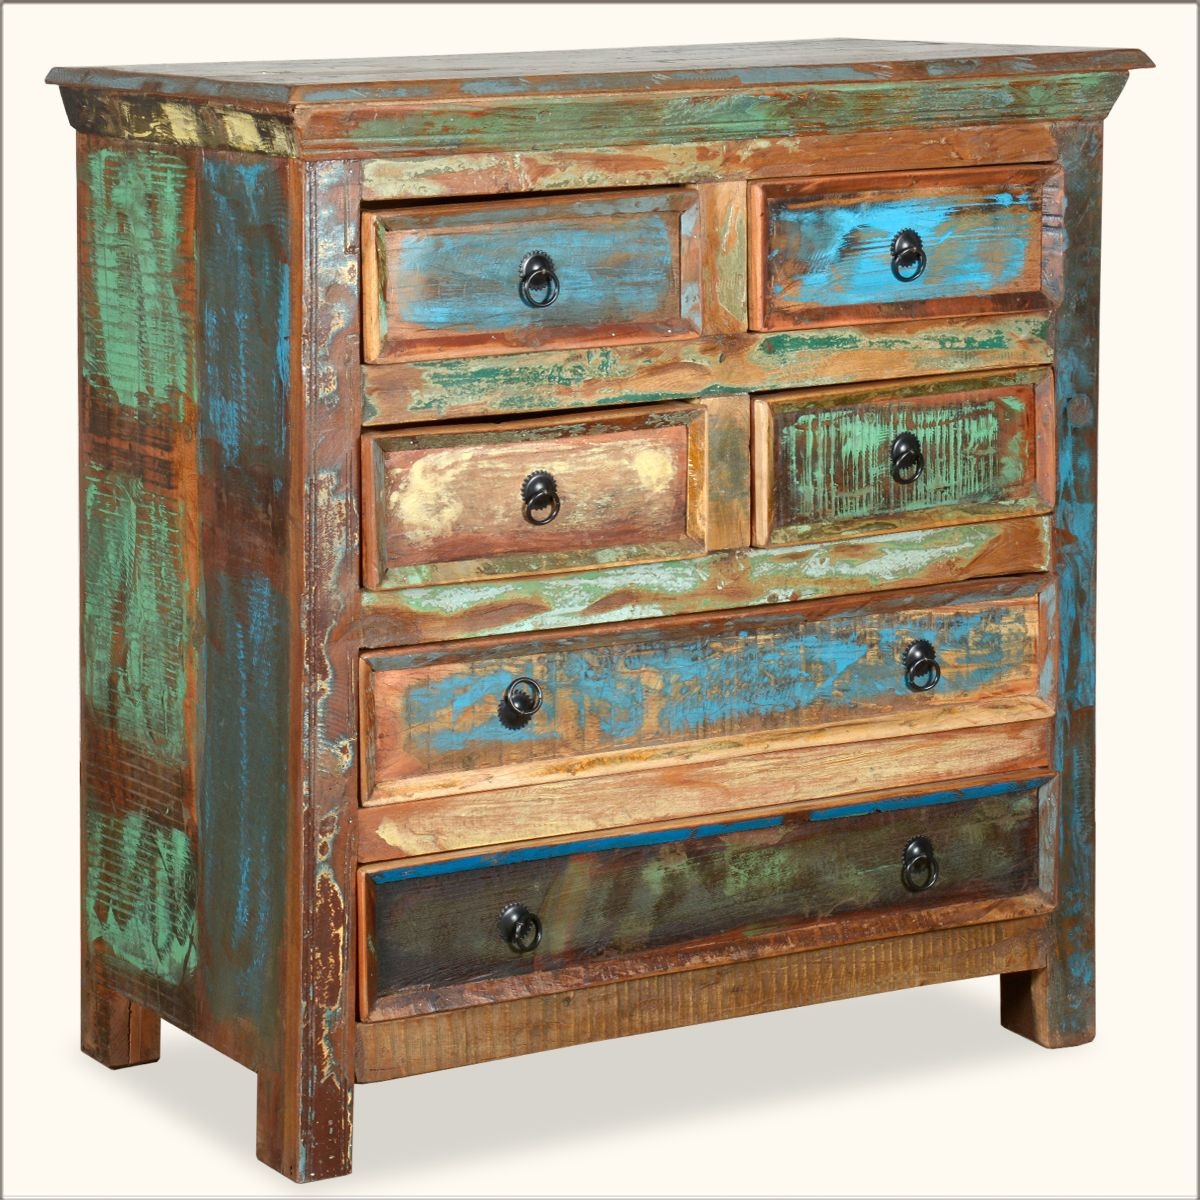 Appalachian rustic painted old wood 6 drawer bedroom Images of painted furniture